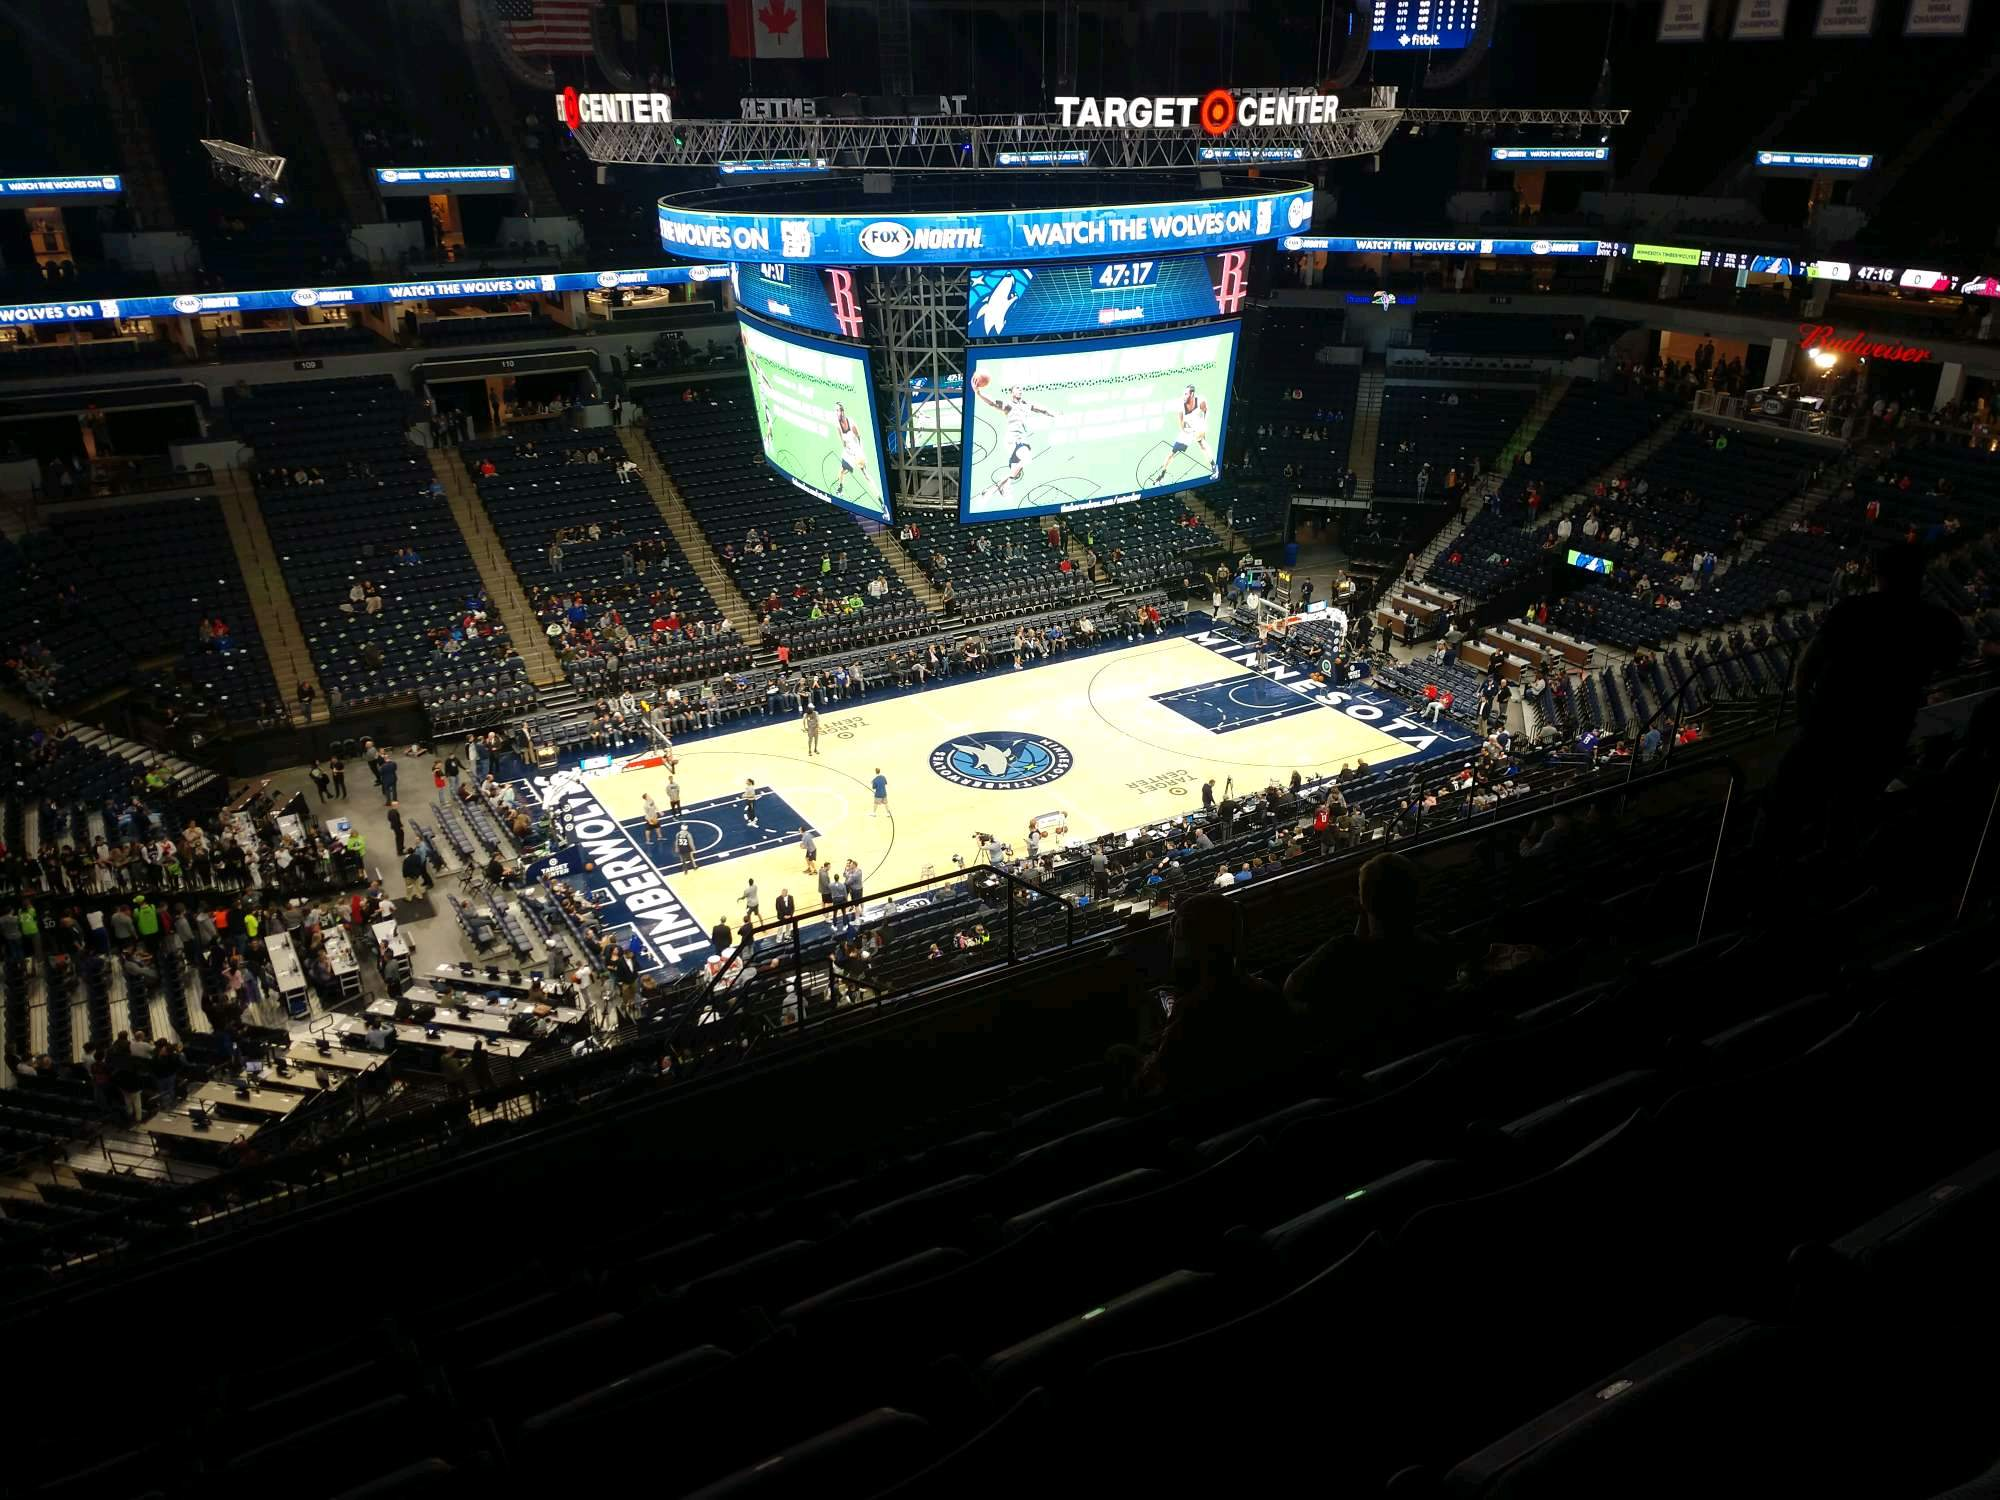 Target Center Section 234 Row Q Seat 8